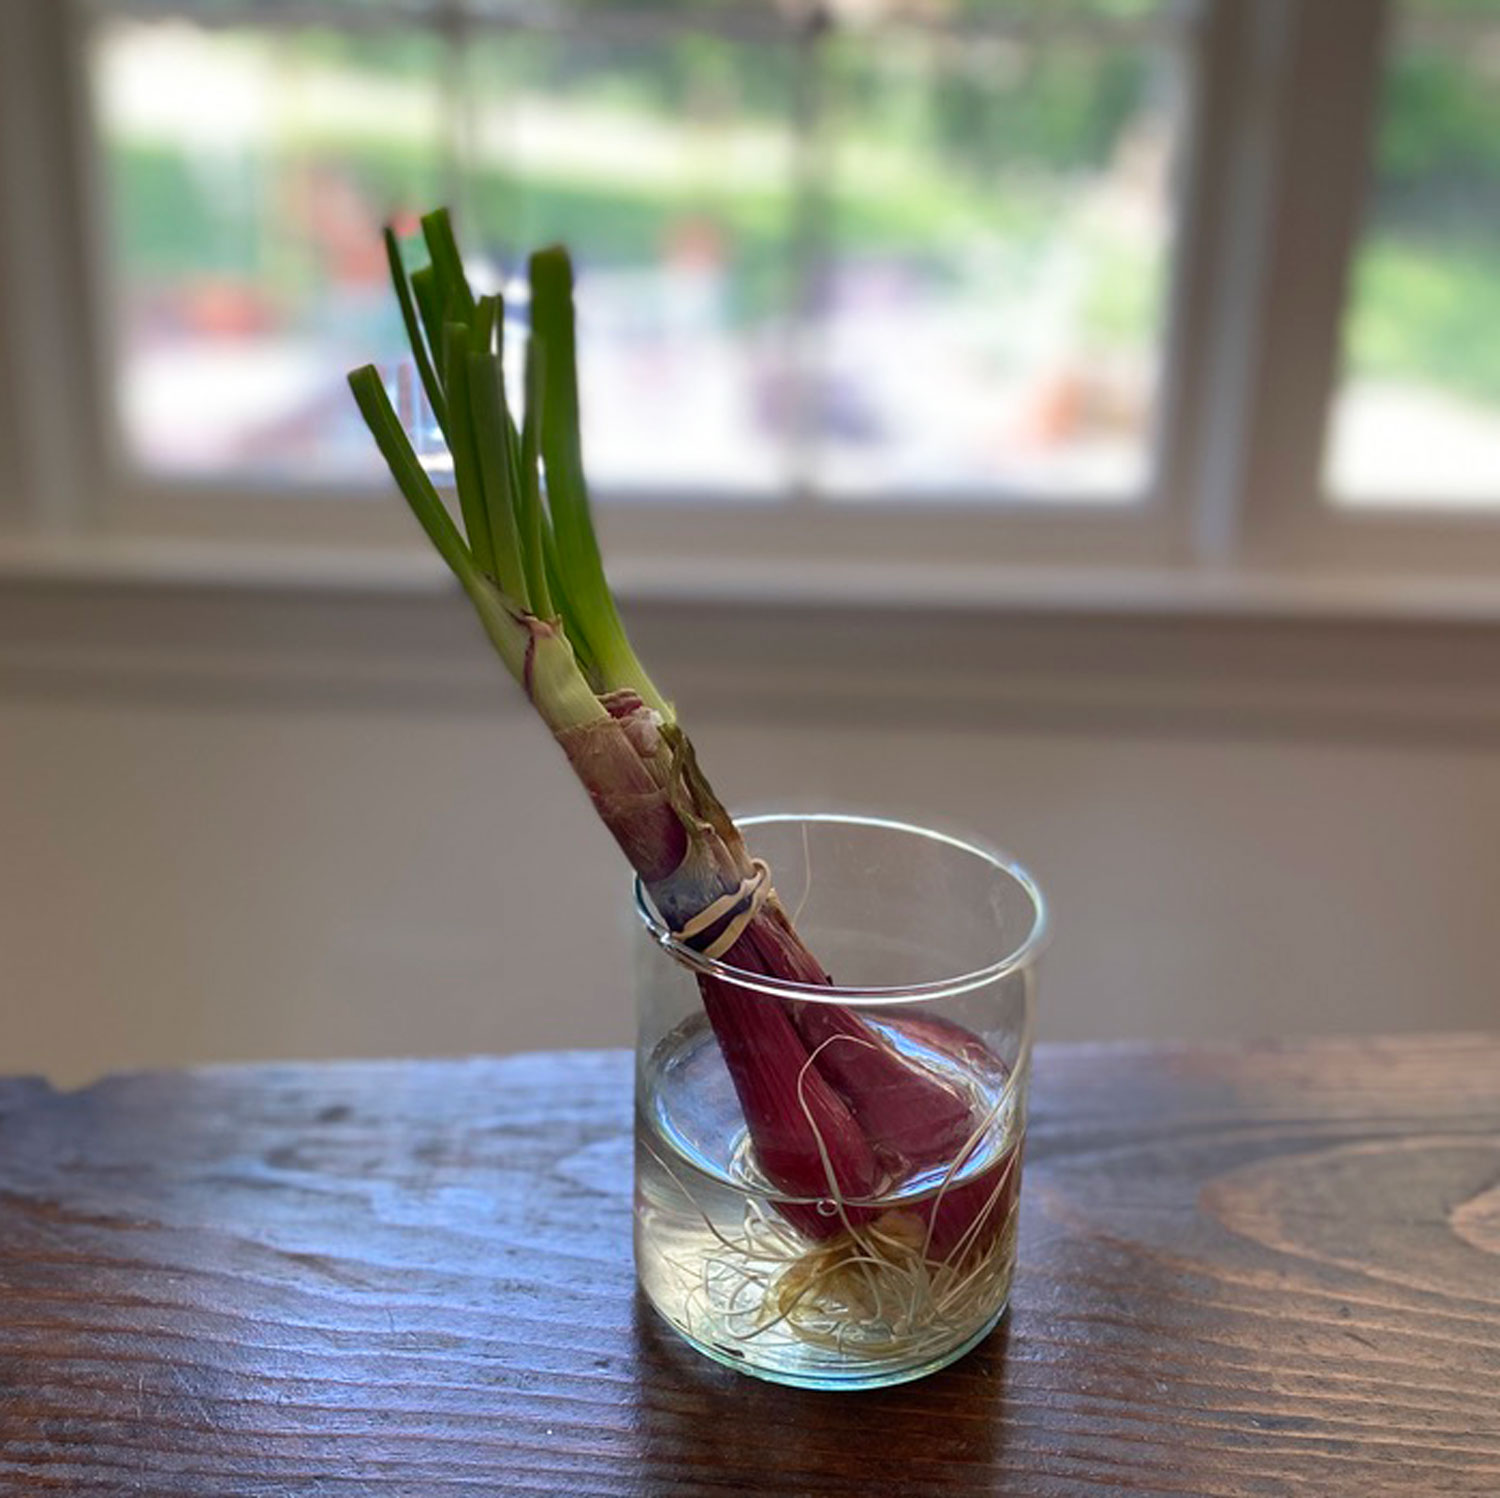 Regrowing Green Onions Is the Easiest Way to Garden